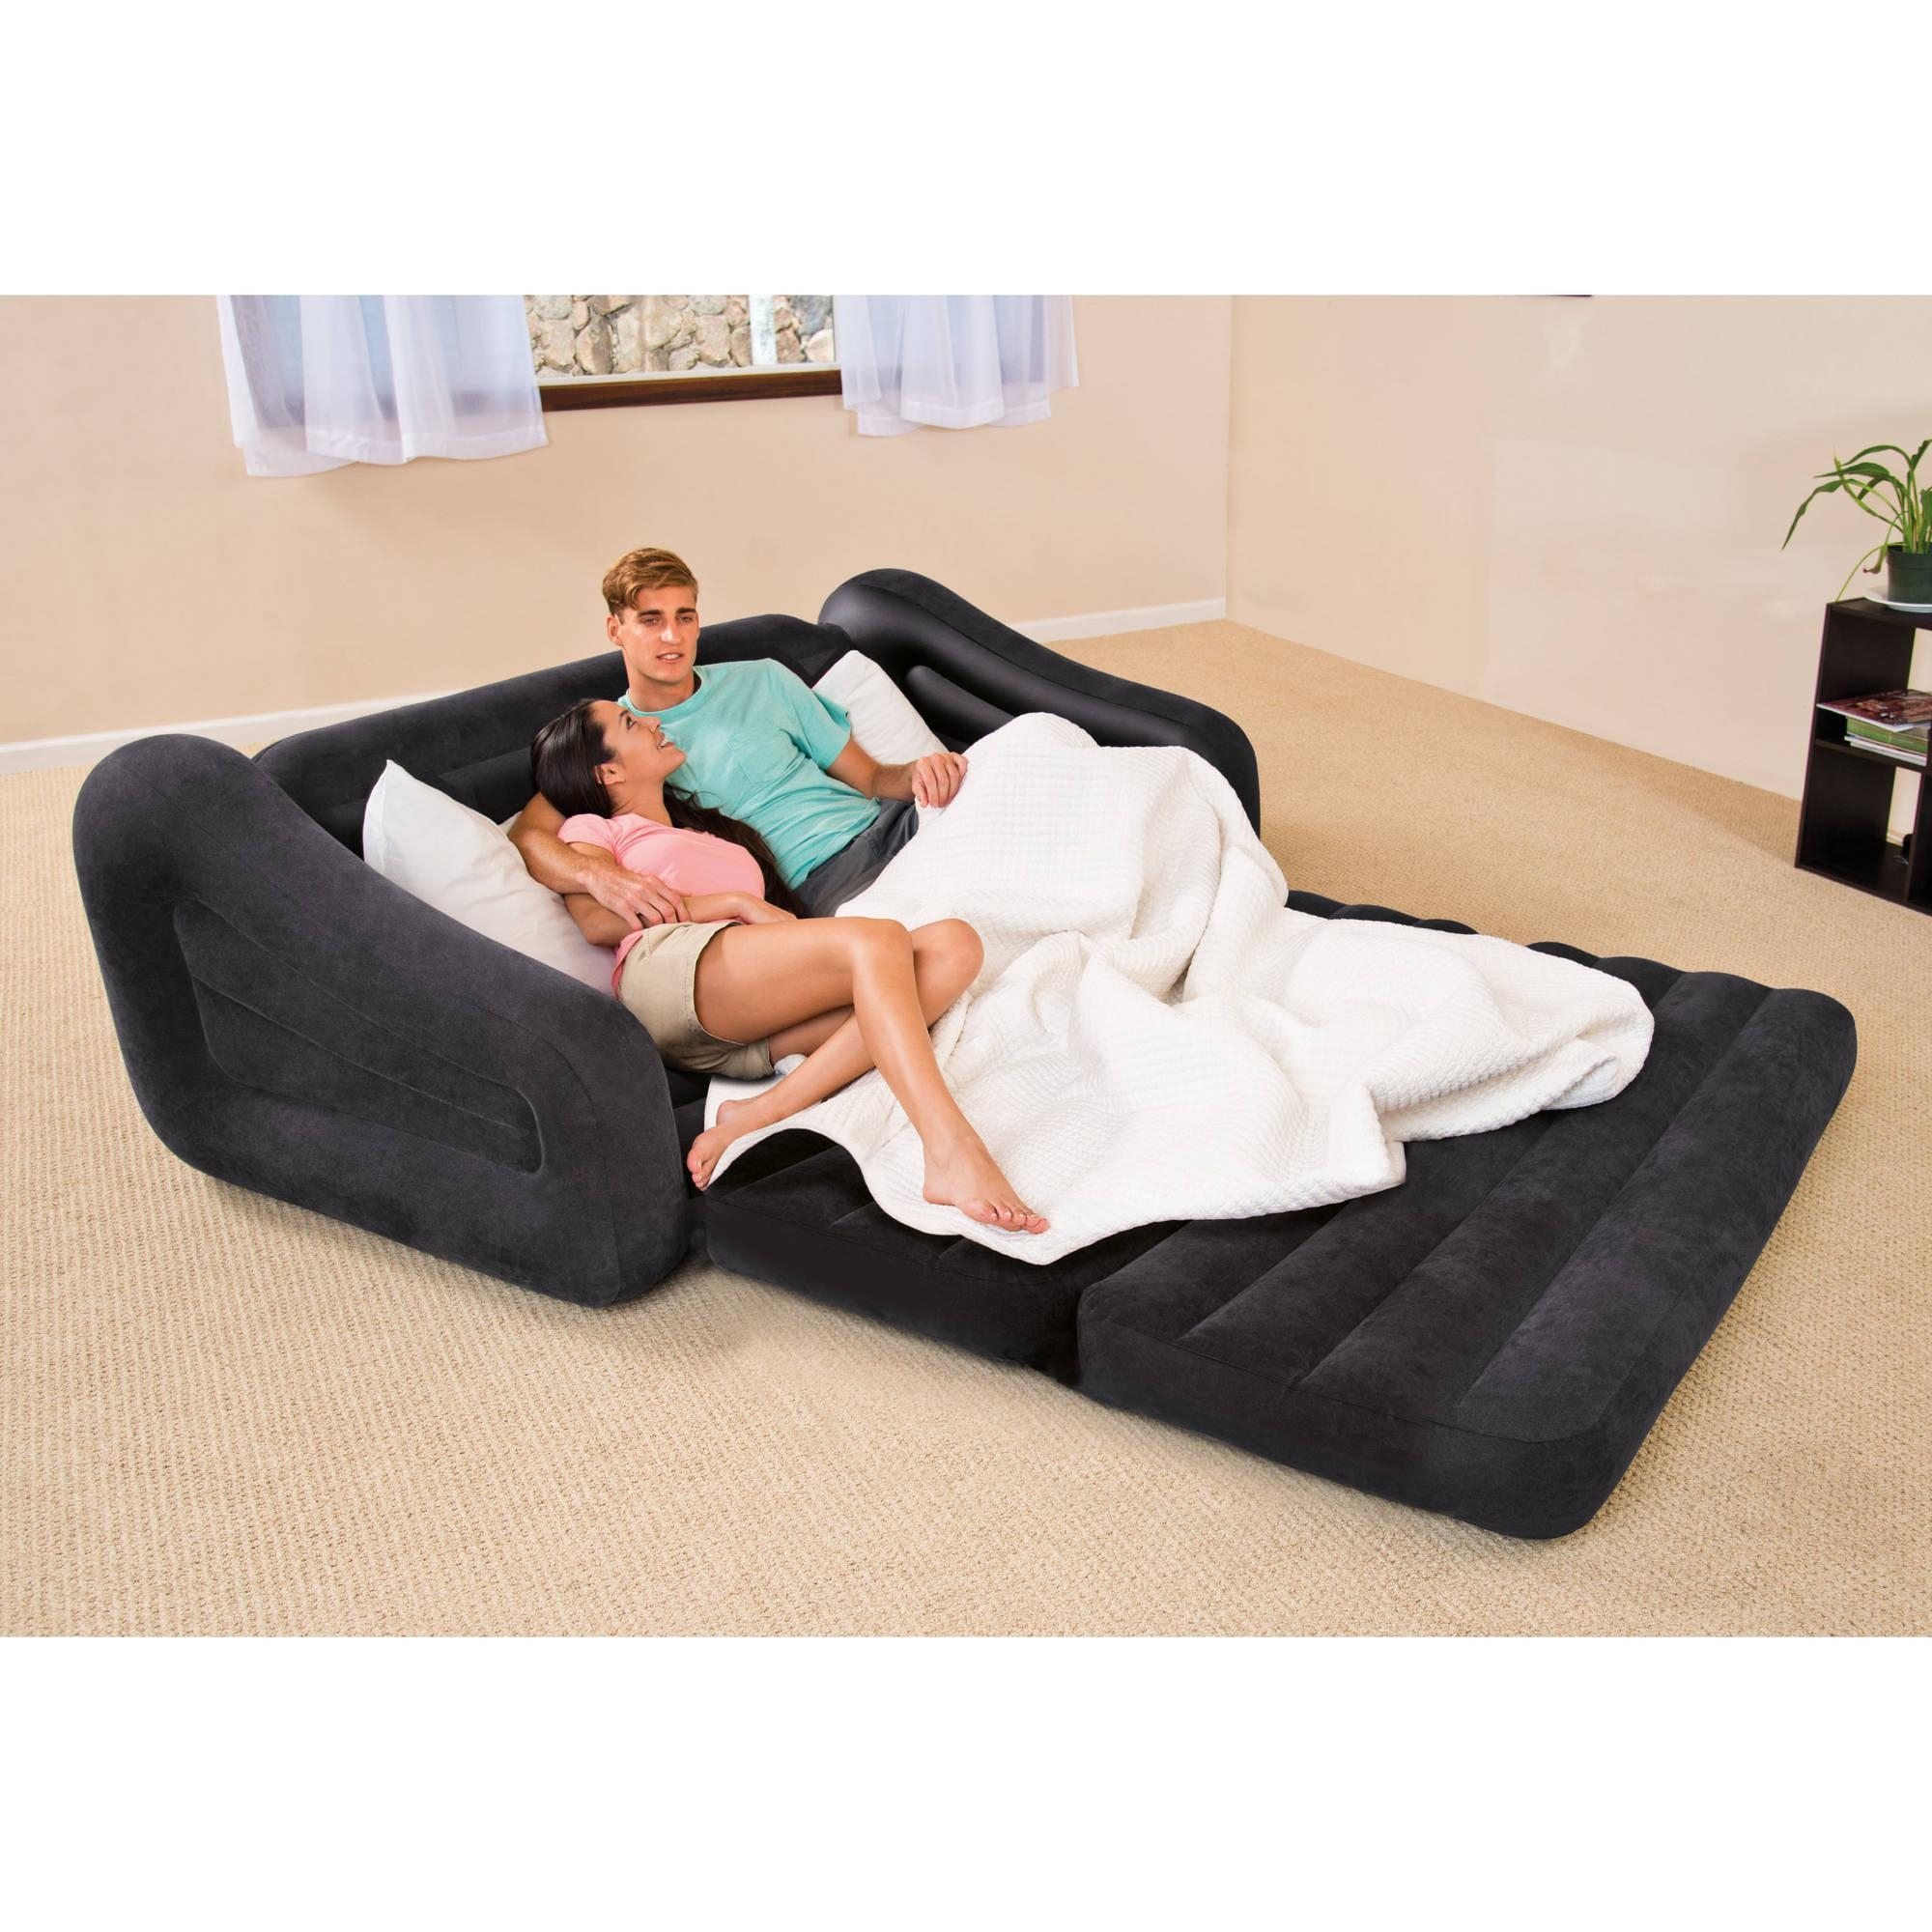 Intex Queen Inflatable Pull Out Sofa Bed – Walmart Regarding Intex Inflatable Sofas (Image 17 of 20)